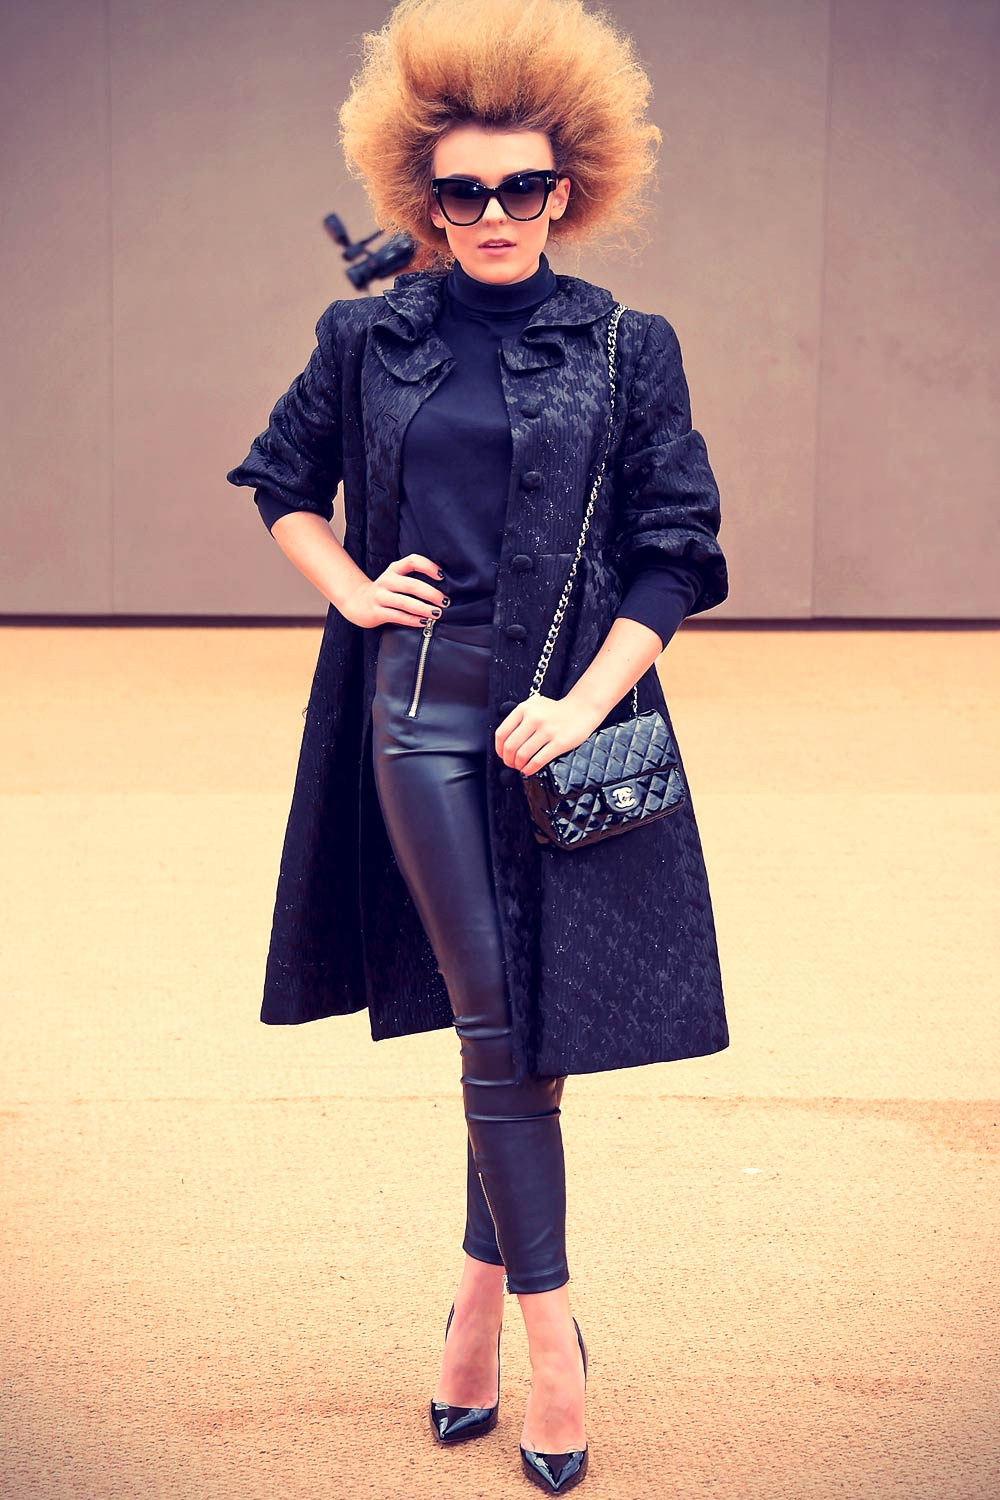 Tallia Storm attends the Burberry Prorsum AW 2015 arrivals